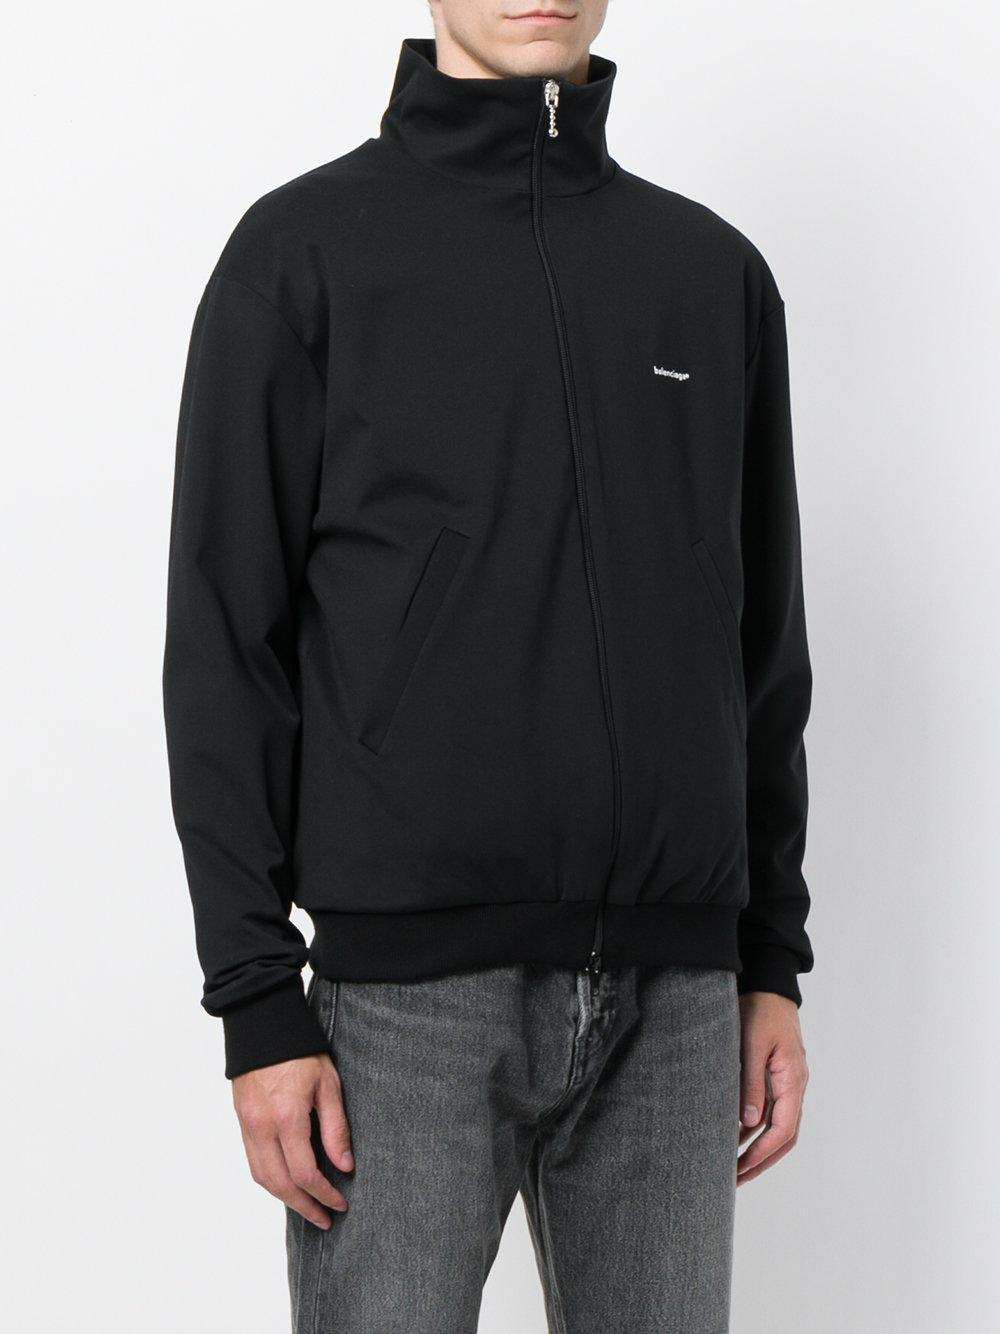 Balenciaga Cotton Logo Zip-up Sweatshirt in Black for Men